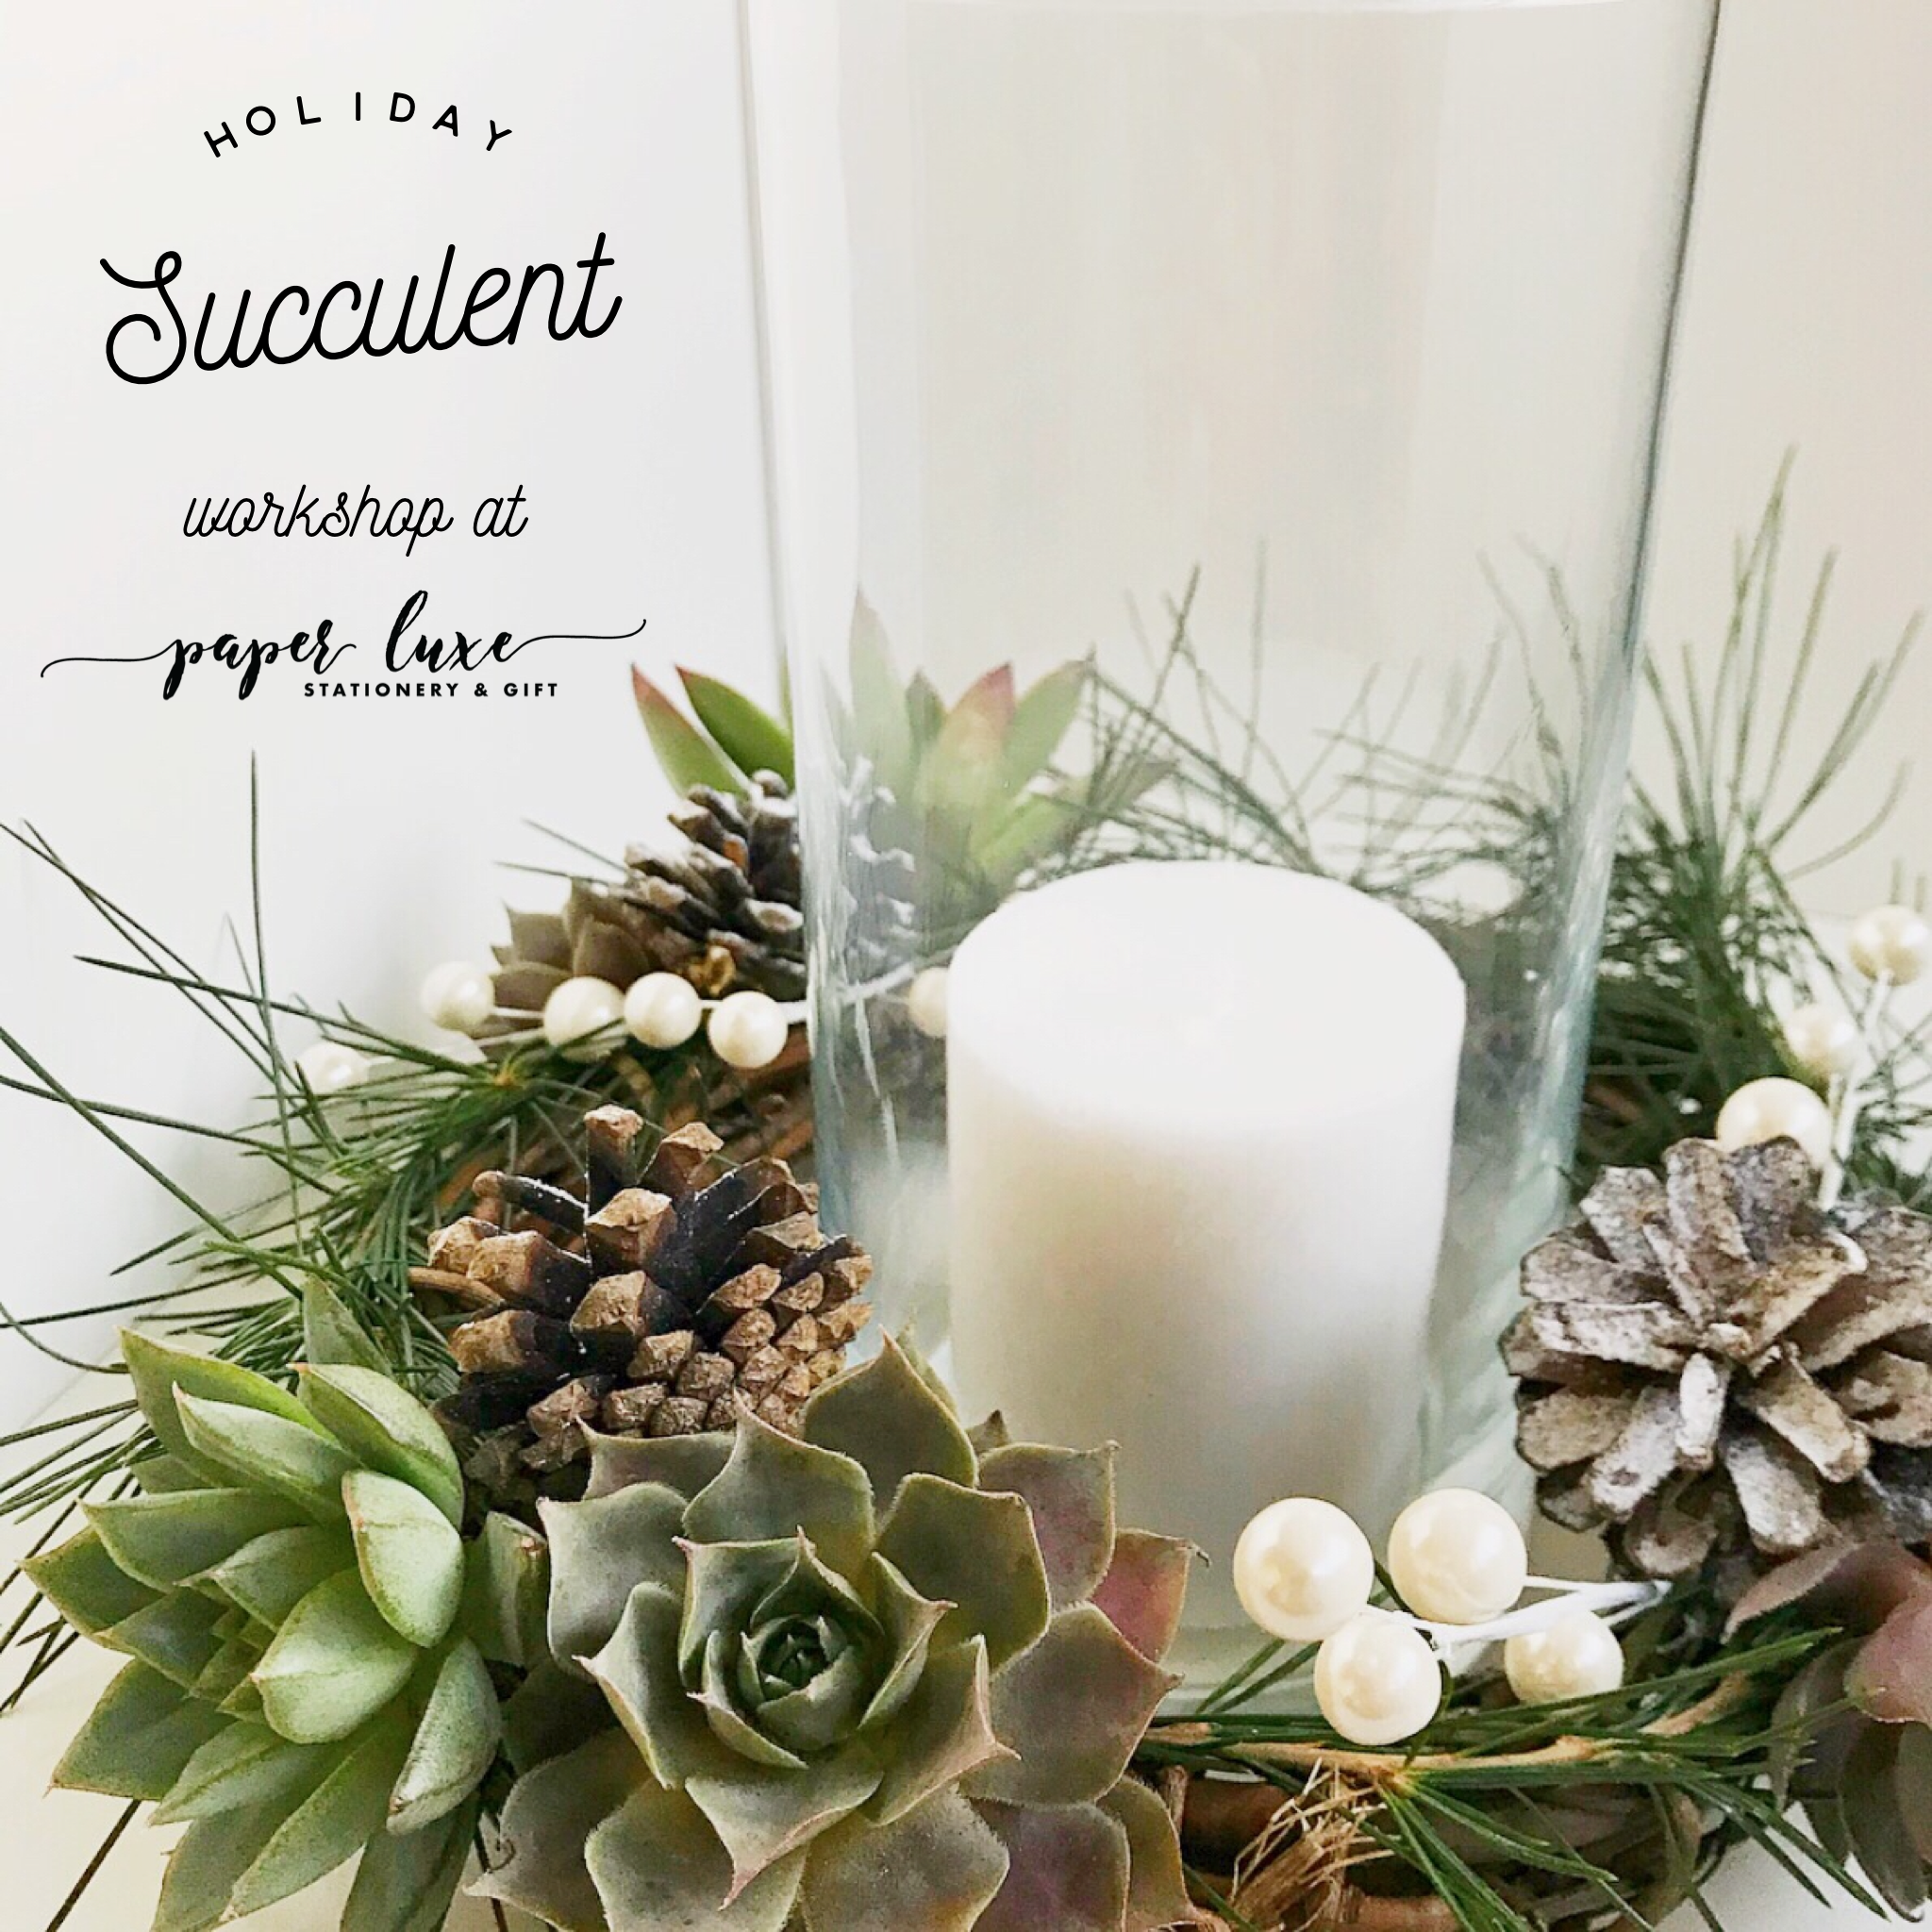 Holiday Succulent Workshop Tacoma